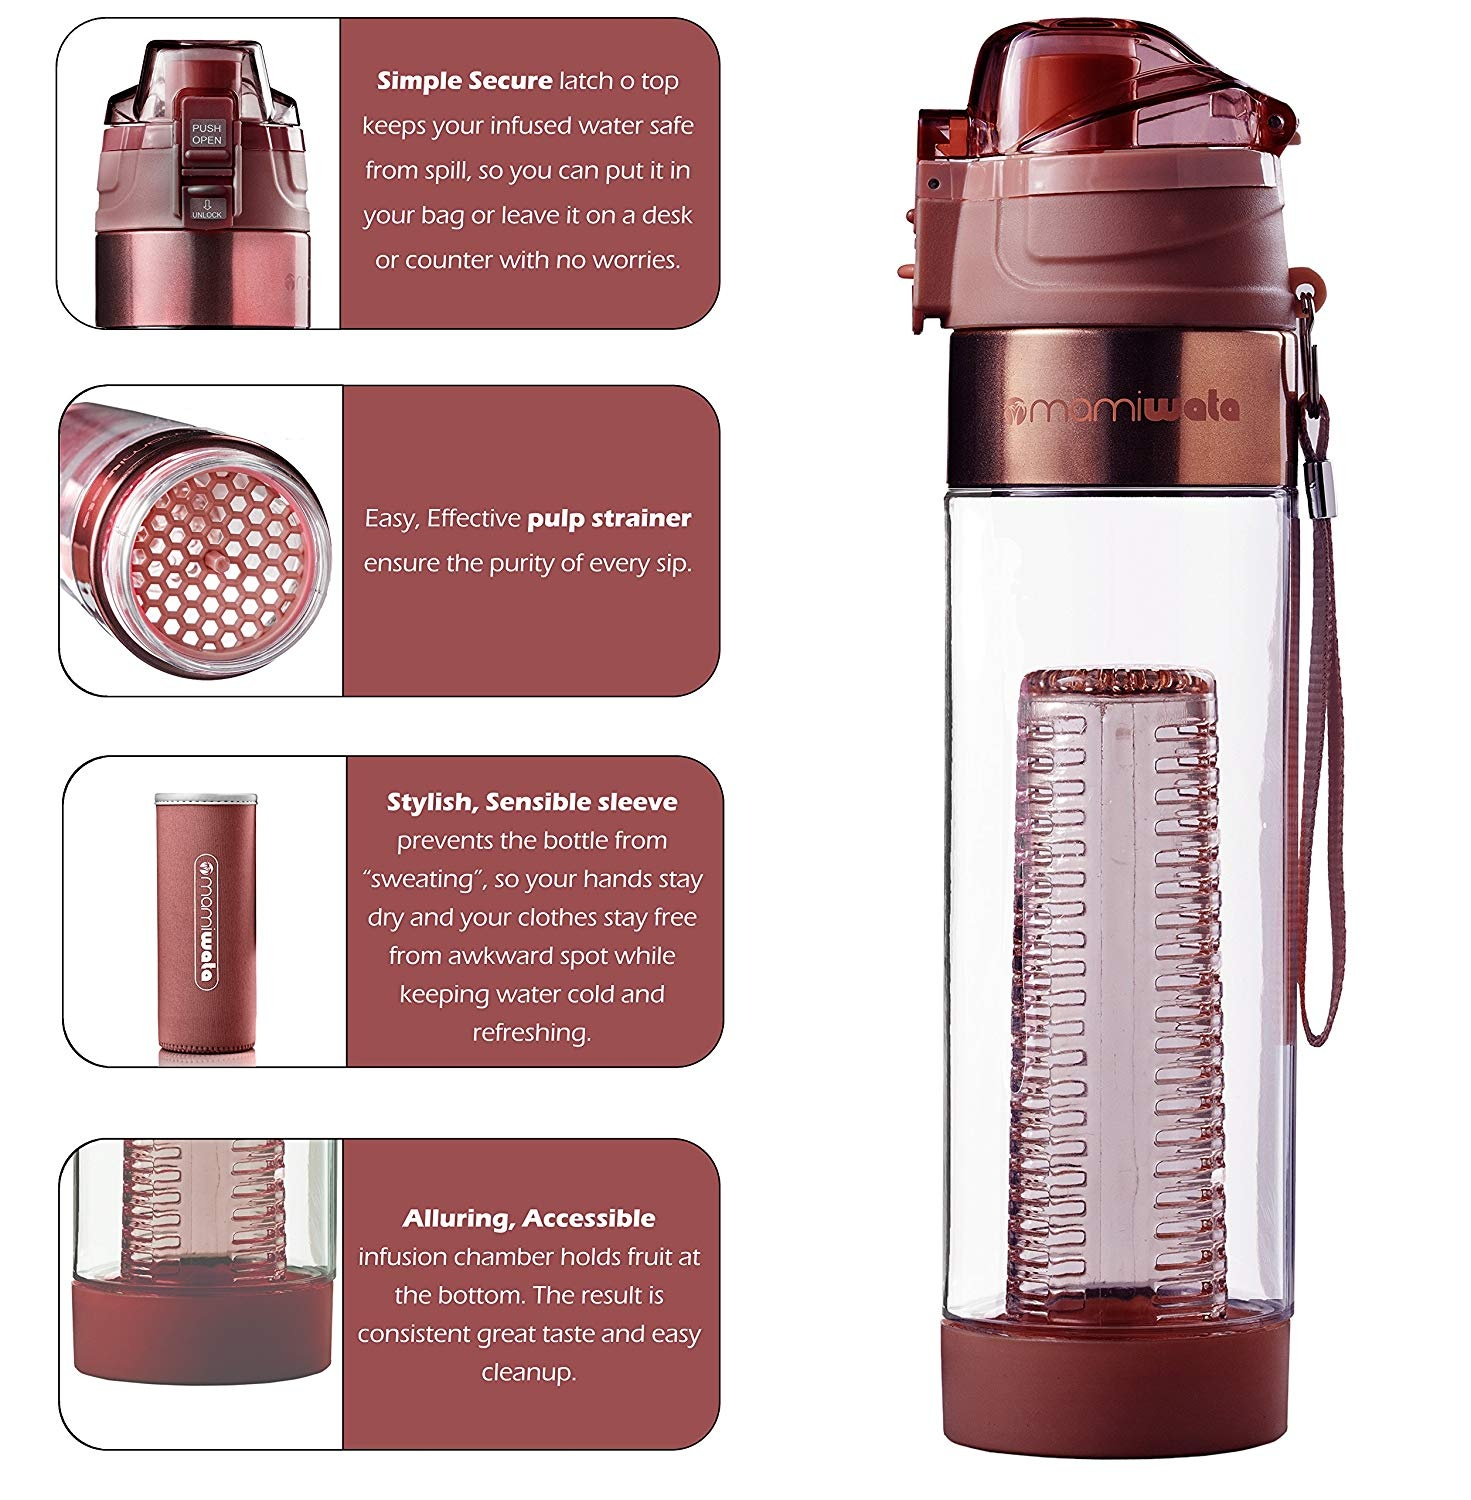 84f85642fd MAMI WATA Fruit Infuser Water Bottle – Beautiful gift box – Unique Stylish  Design - Free fruit infused water recipes eBook and insulating sleeve –  710ml by ...